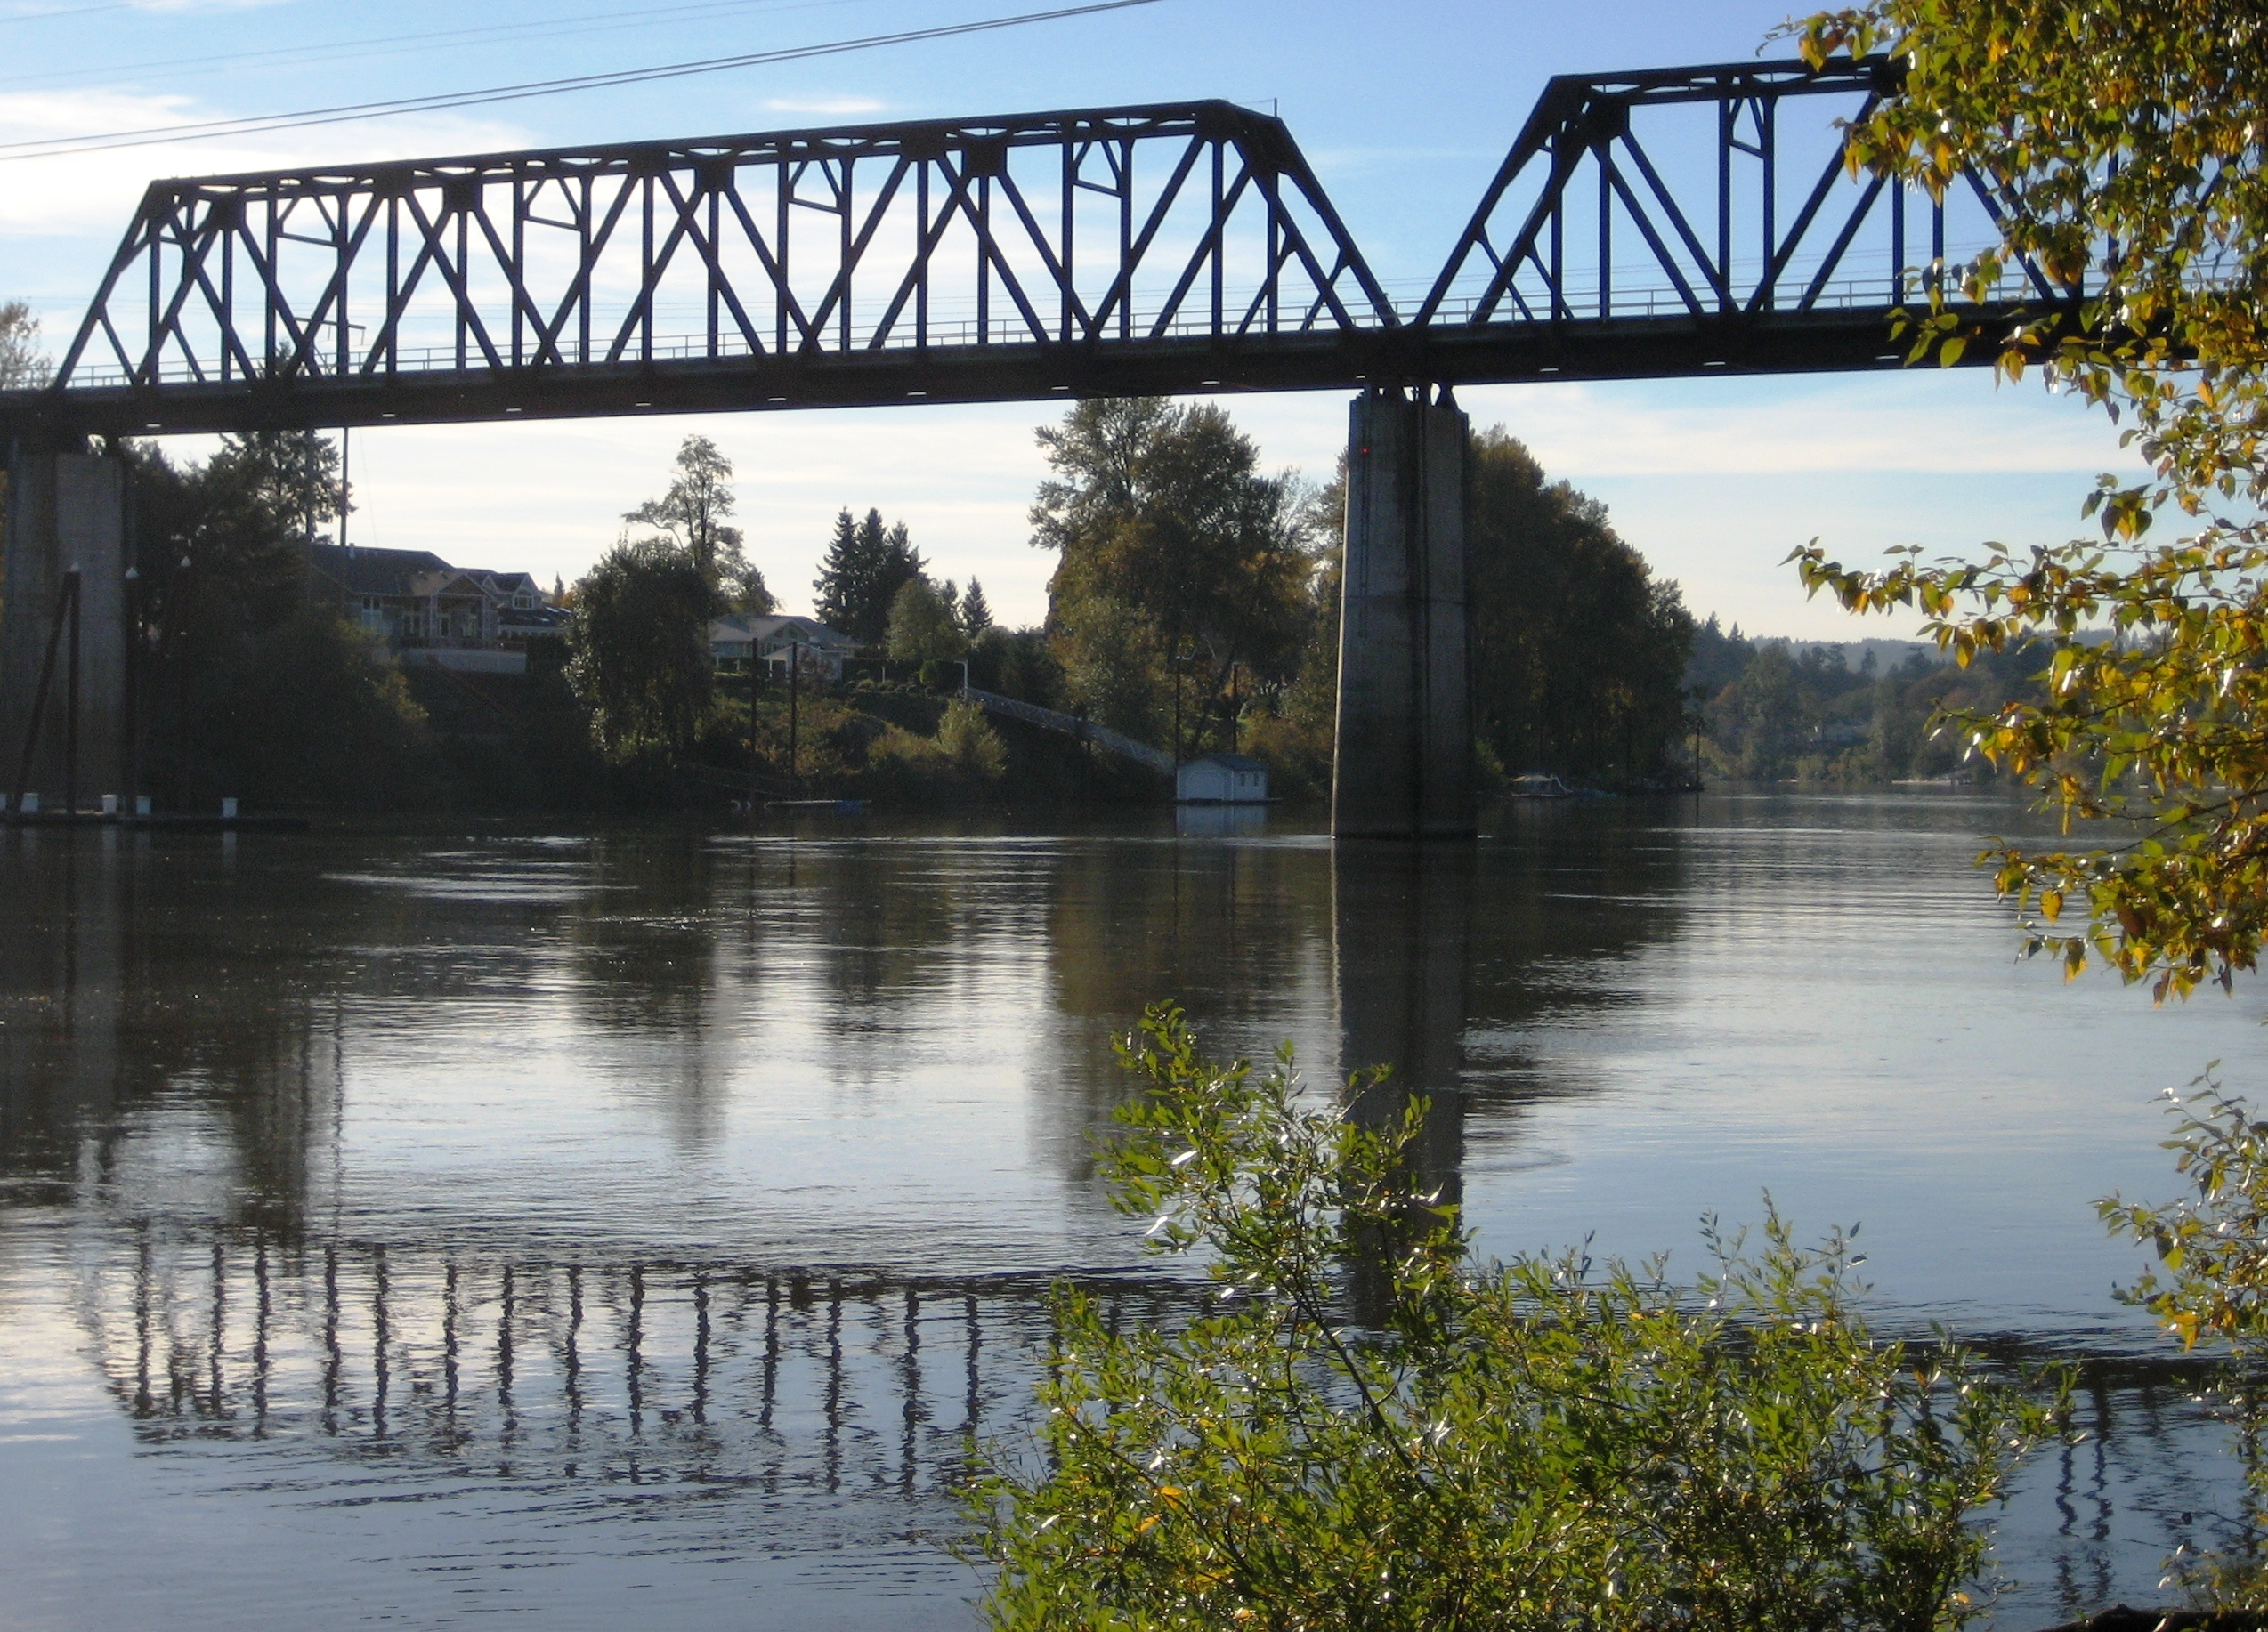 File:Wilsonville railroad bridge 2.JPG - Wikimedia Commons